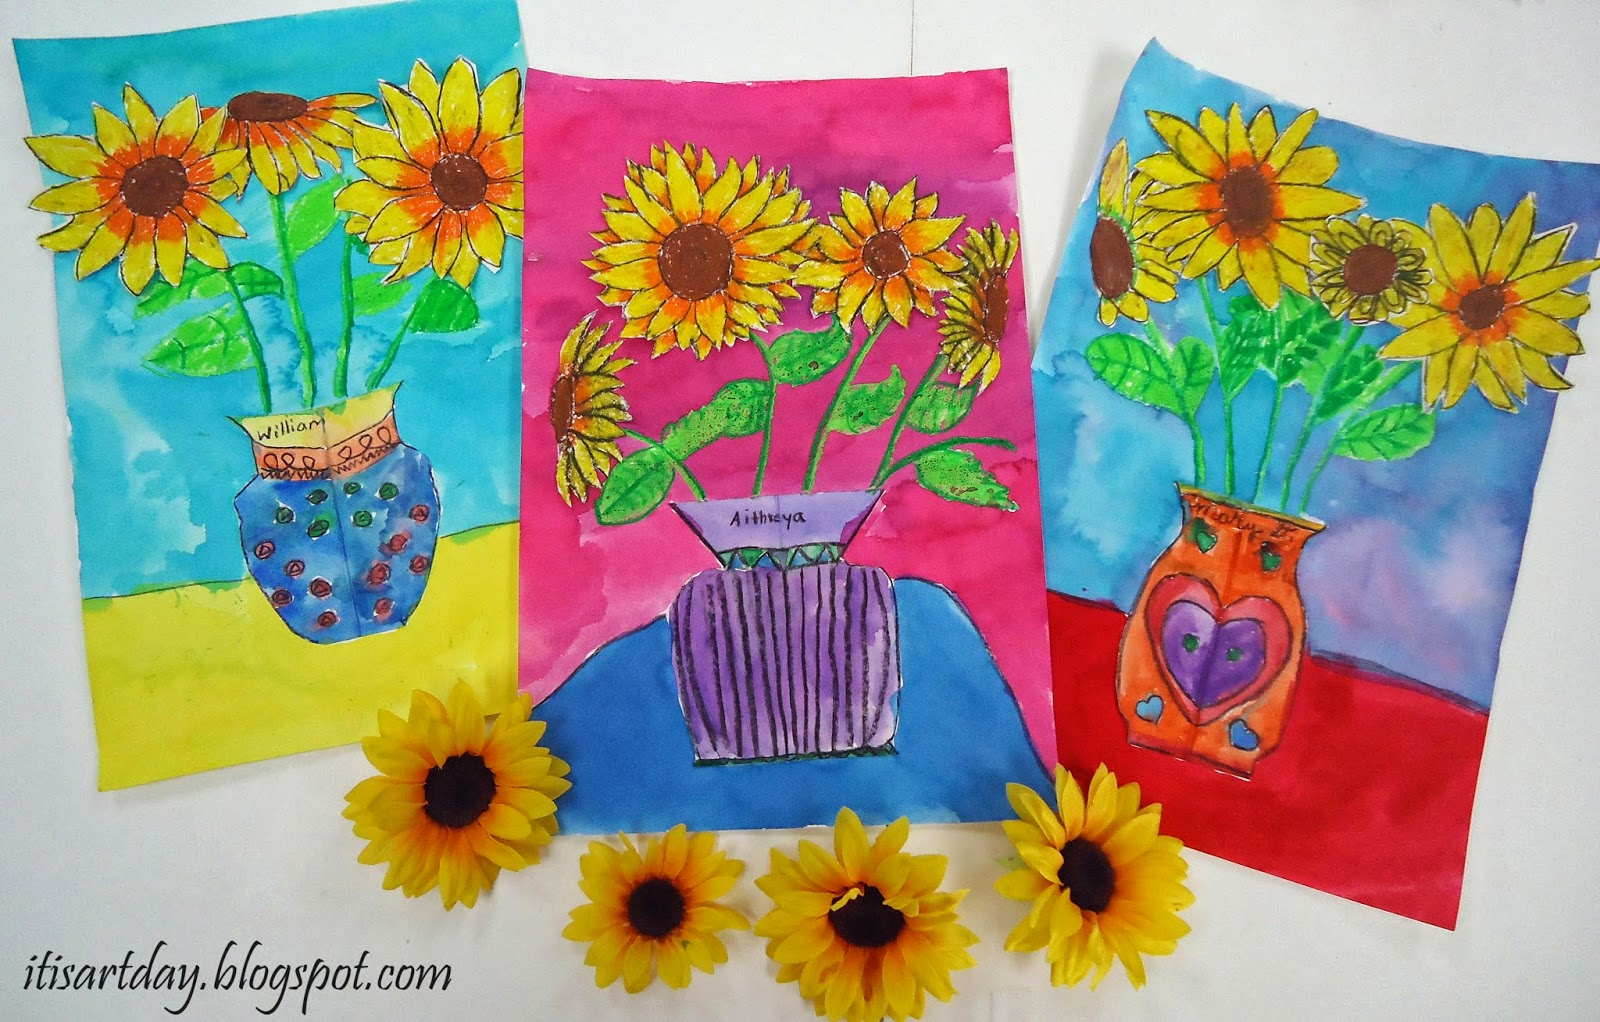 We Are So Ready For Spring While The Sunflower Isnt A Flower In North Texas Color Is Really Warming Us Up I Changed My 2nd Grade Mixed Media